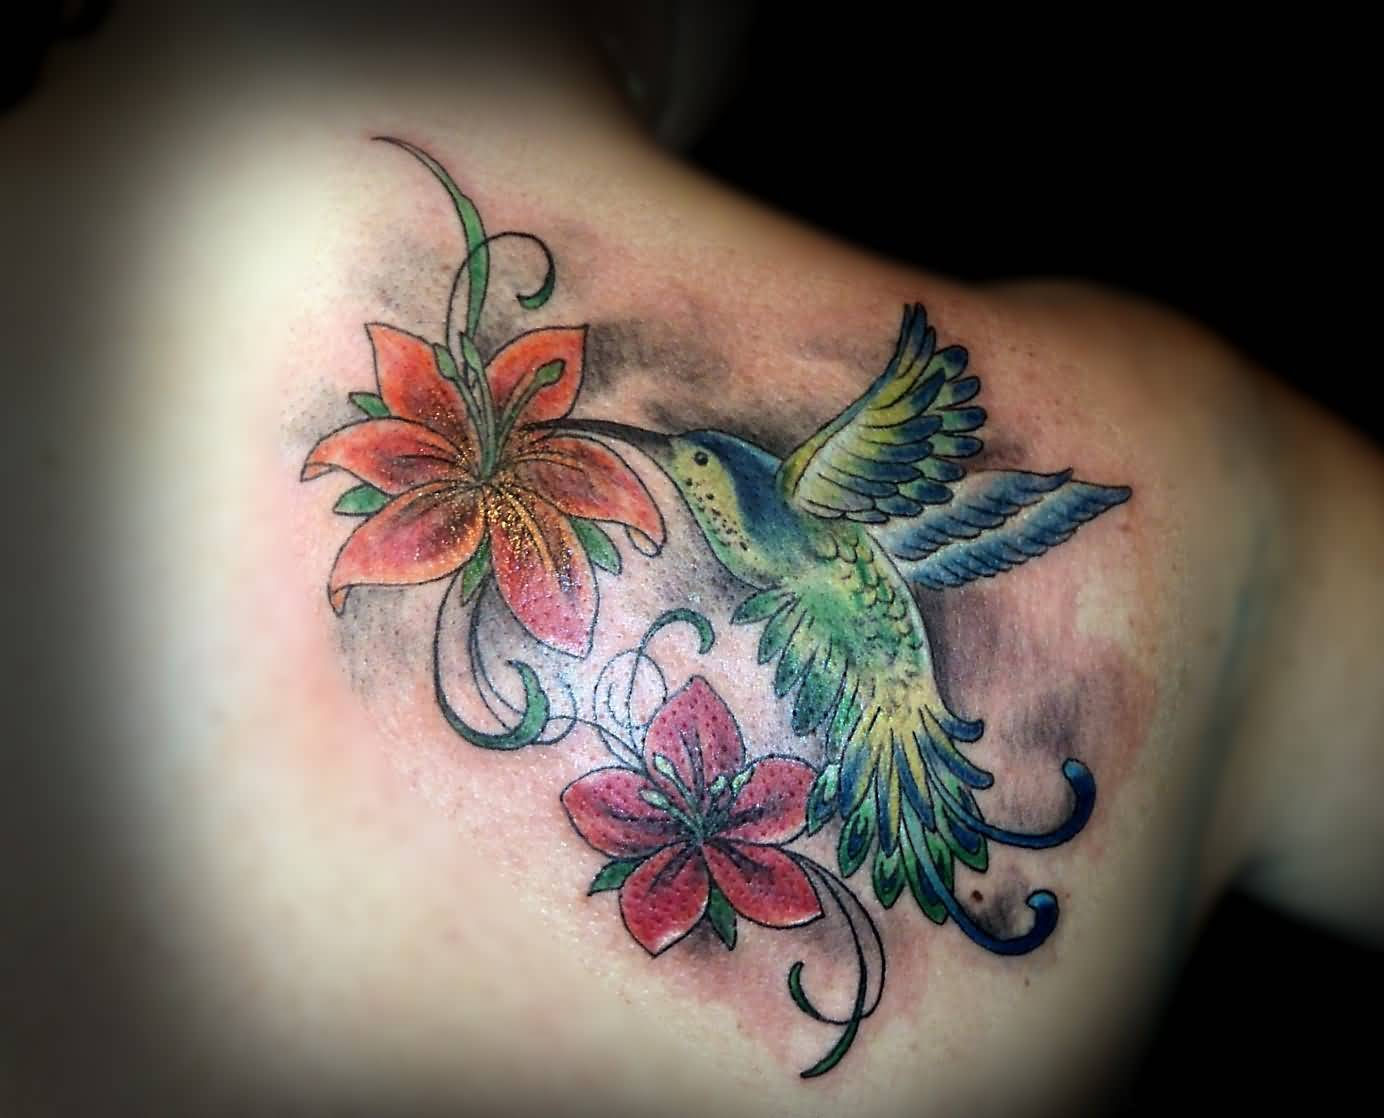 Small hummingbird tattoo ideas and small hummingbird for Hummingbird tattoo designs